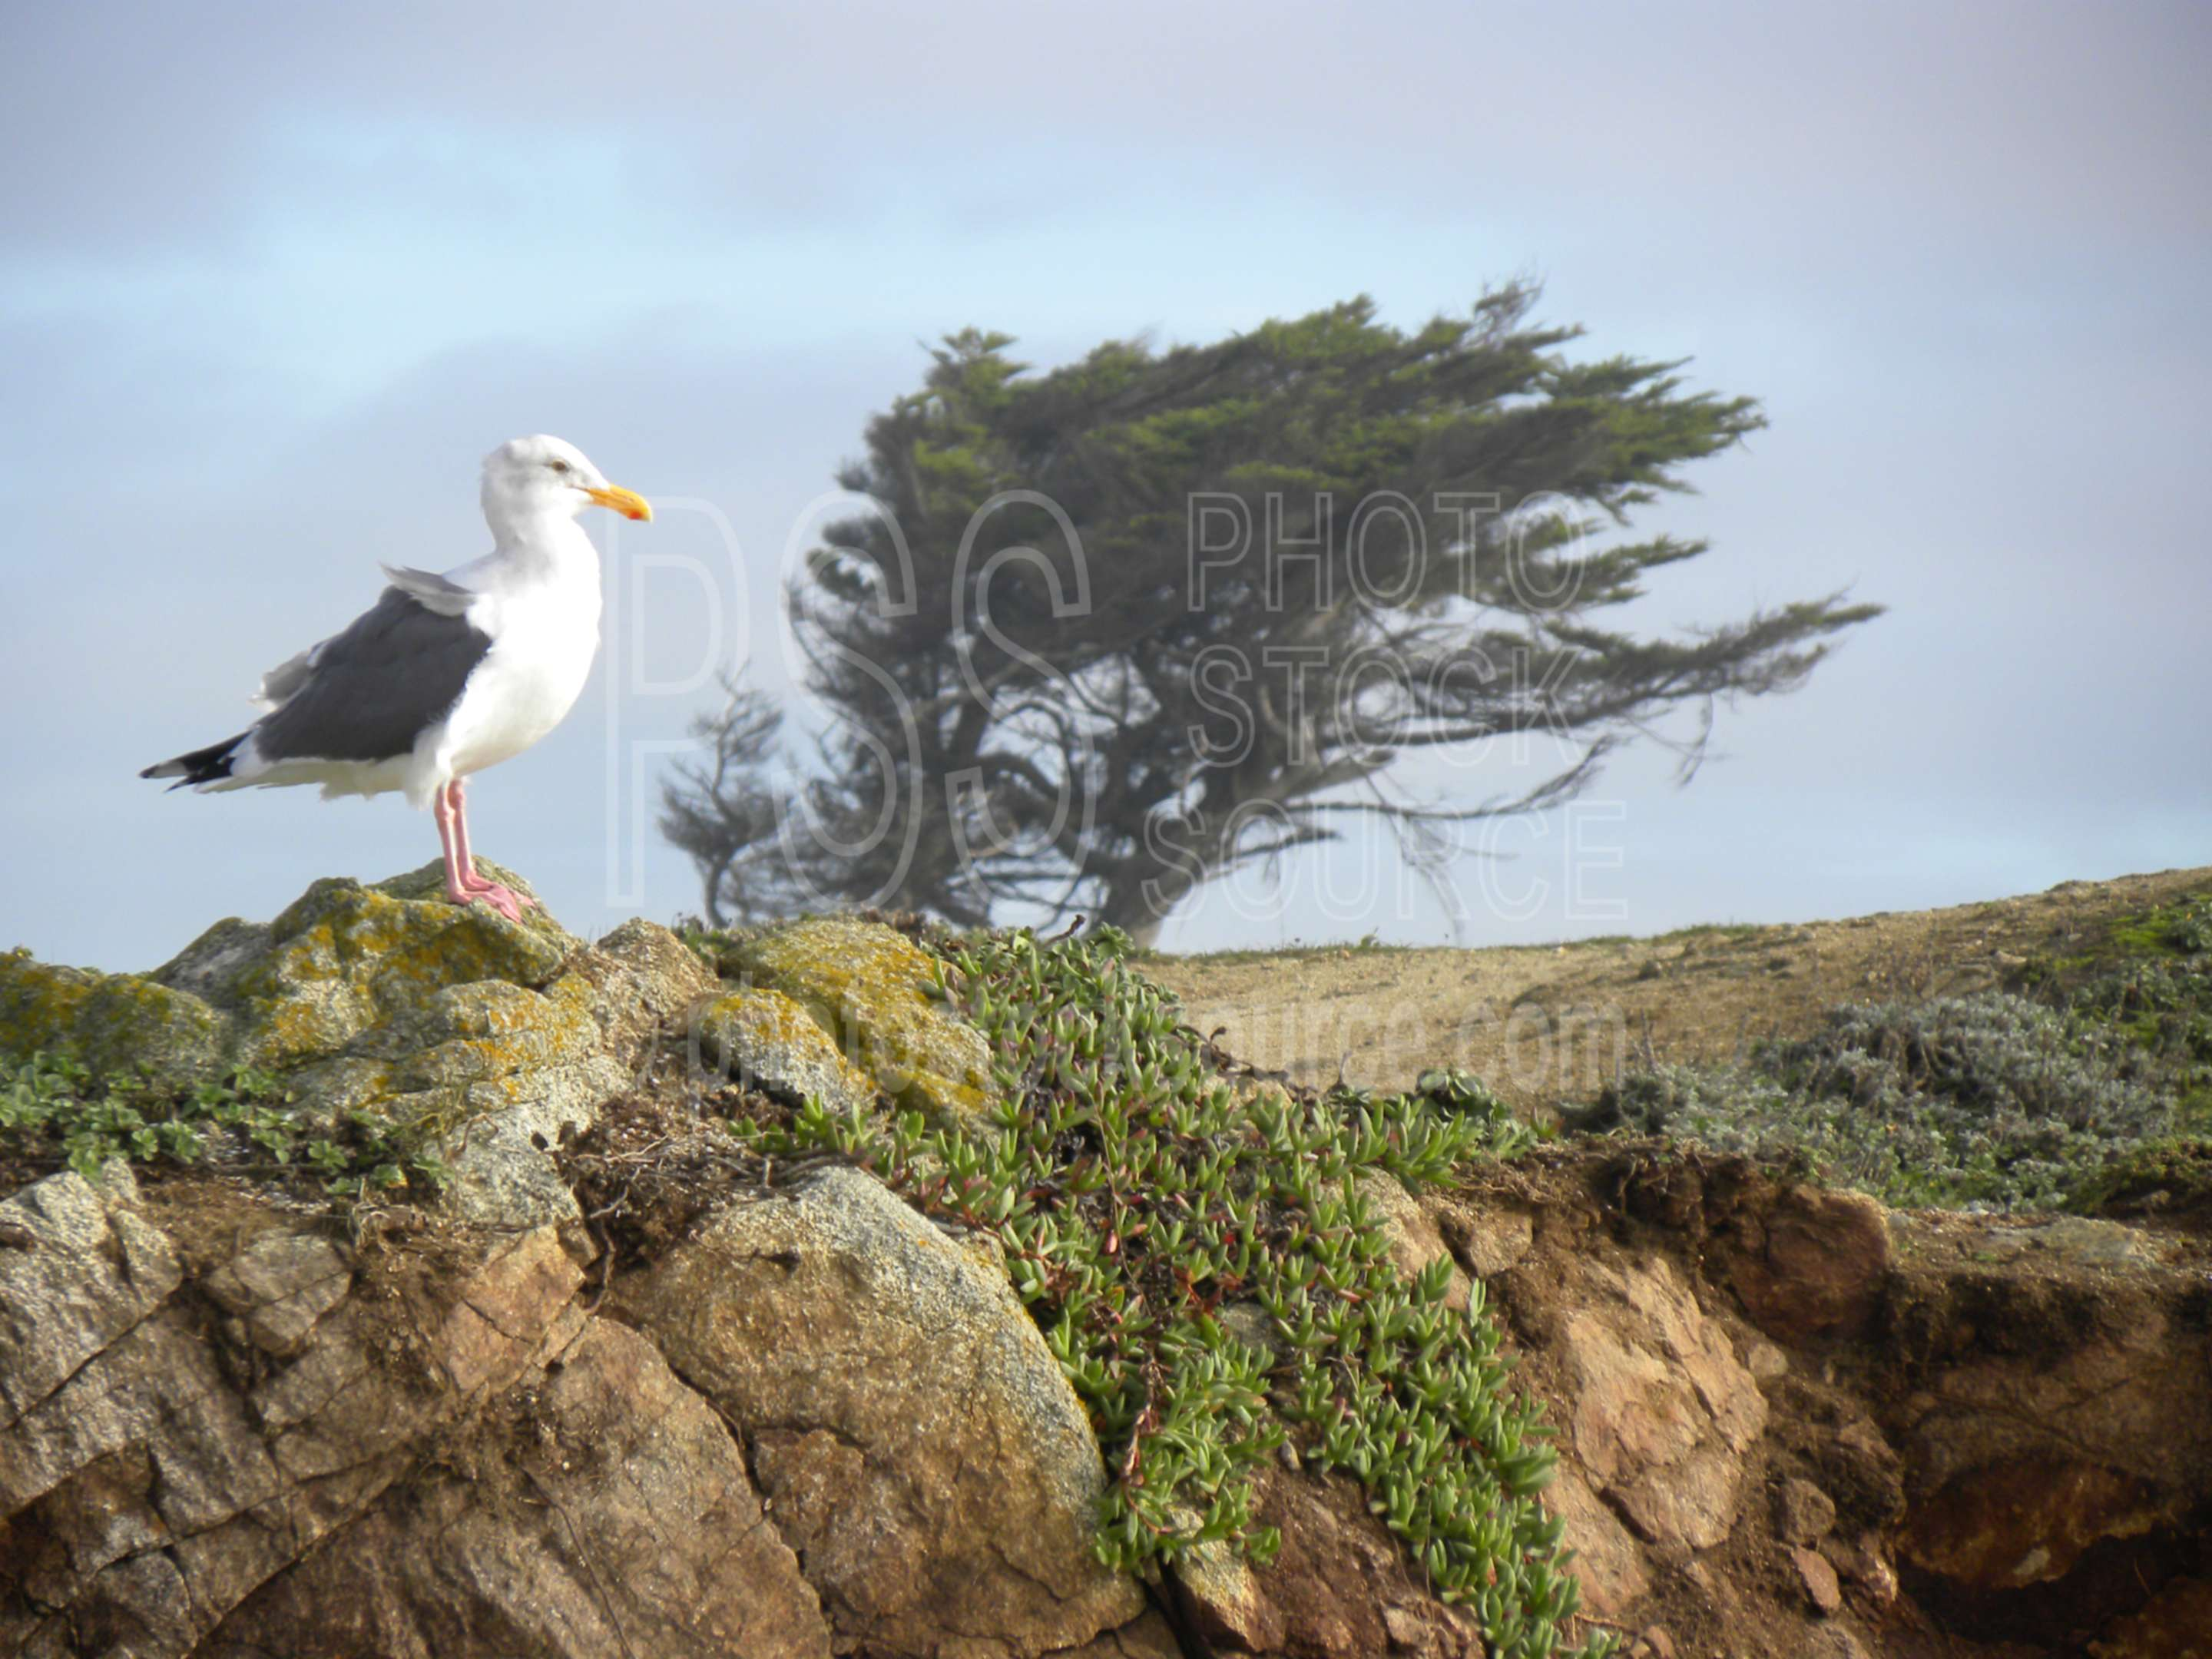 Seagull and Cypress Tree,coast,coastline,gull,seagull,tree,cypress tree,wind swept,windy,nature